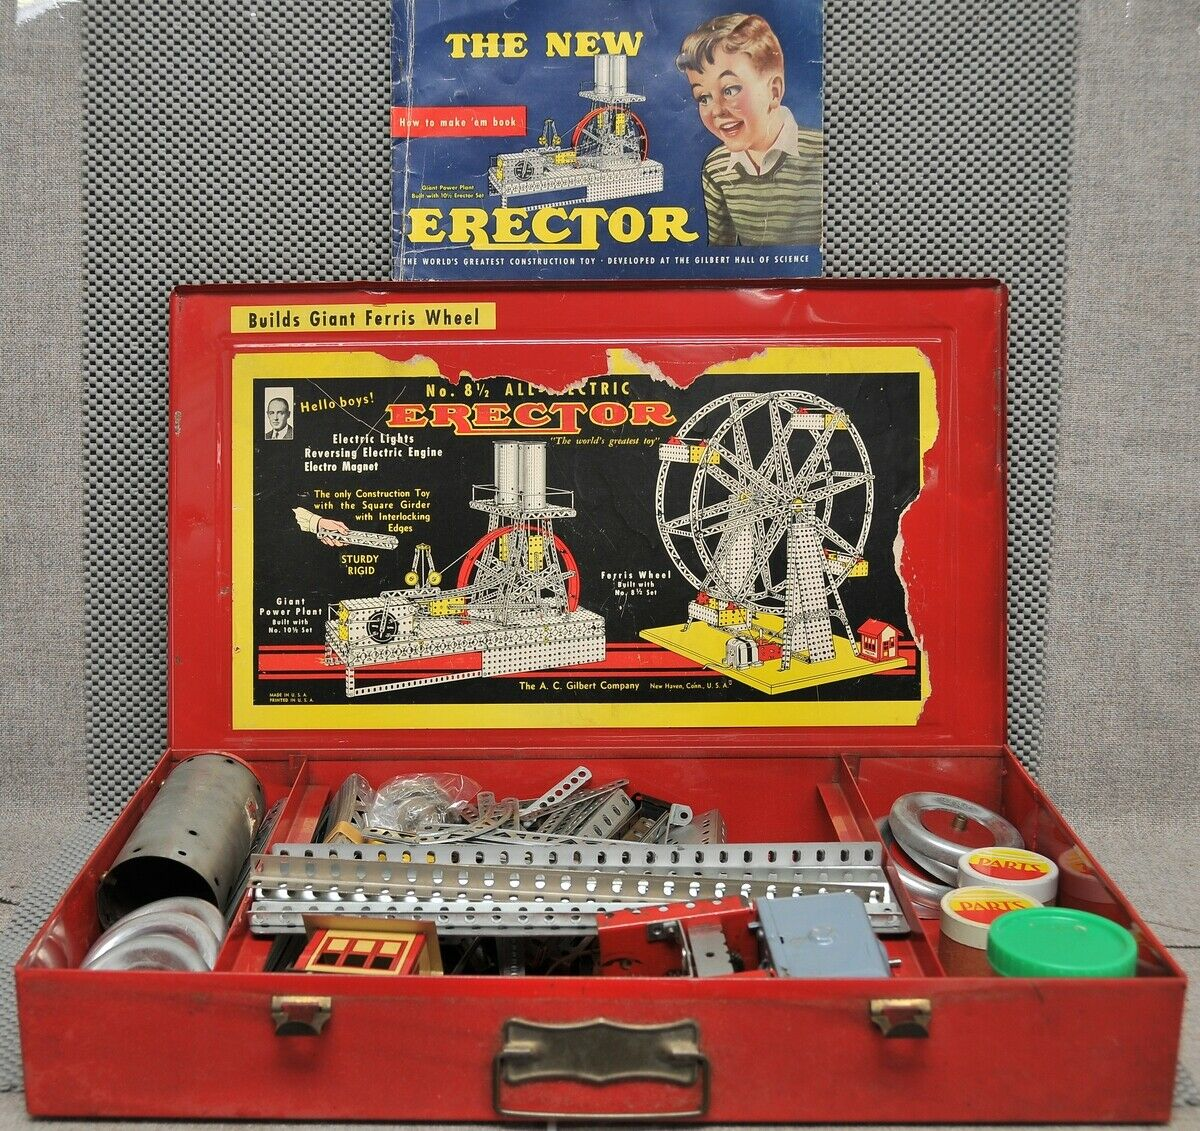 Gilbert No. 8 1 2 All-Electric Erector set in original box to build Ferris Wheel